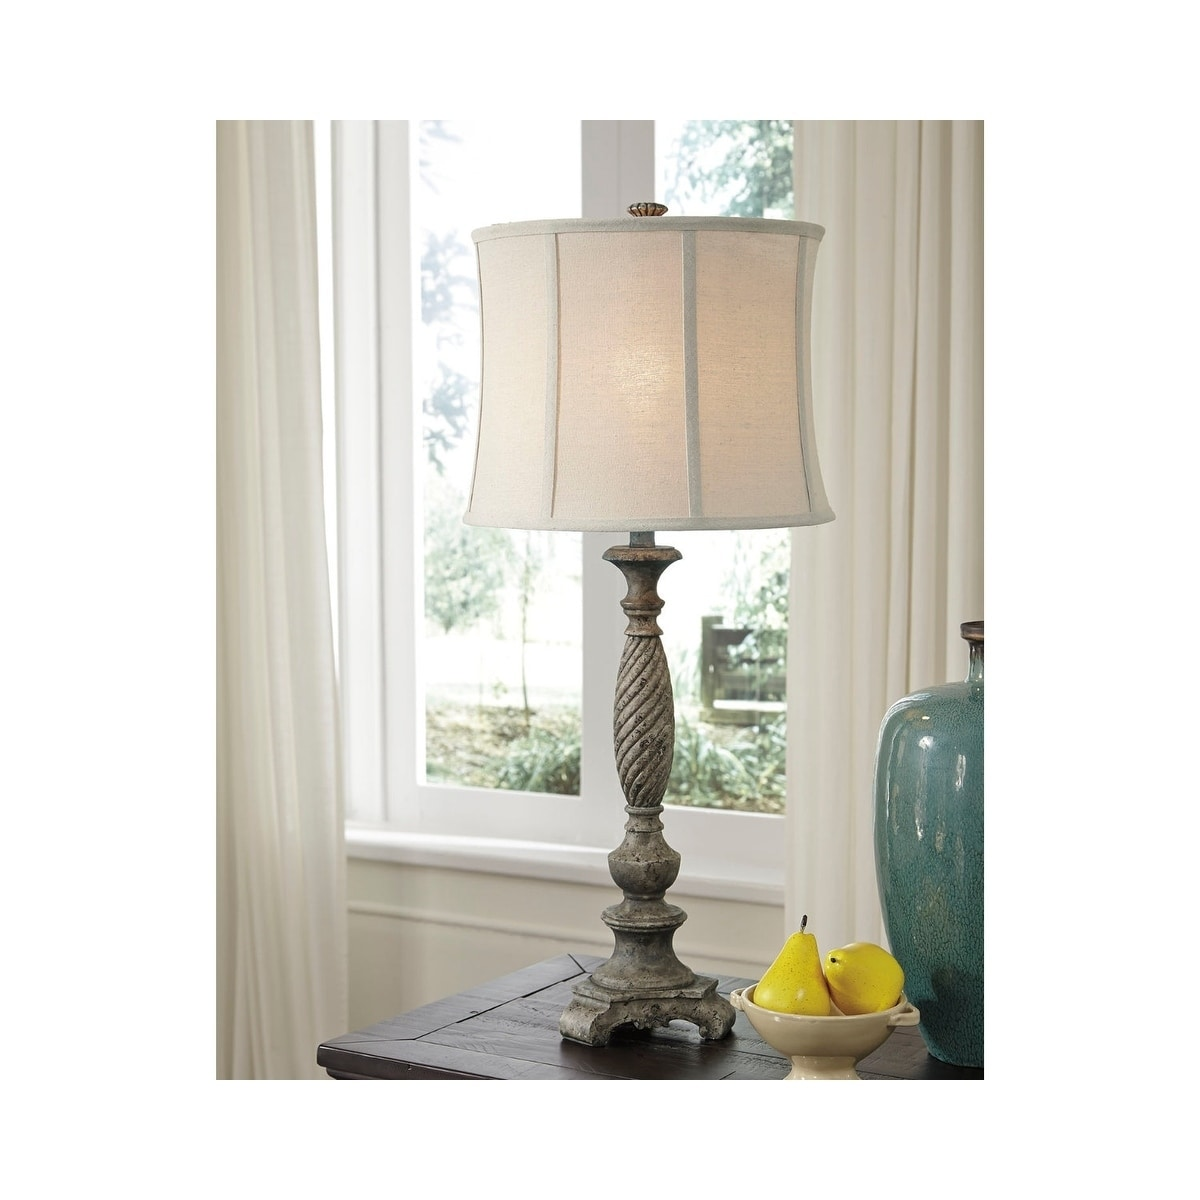 Shop alinae antique gray 35 inch table lamp on sale free shipping today overstock 21011274